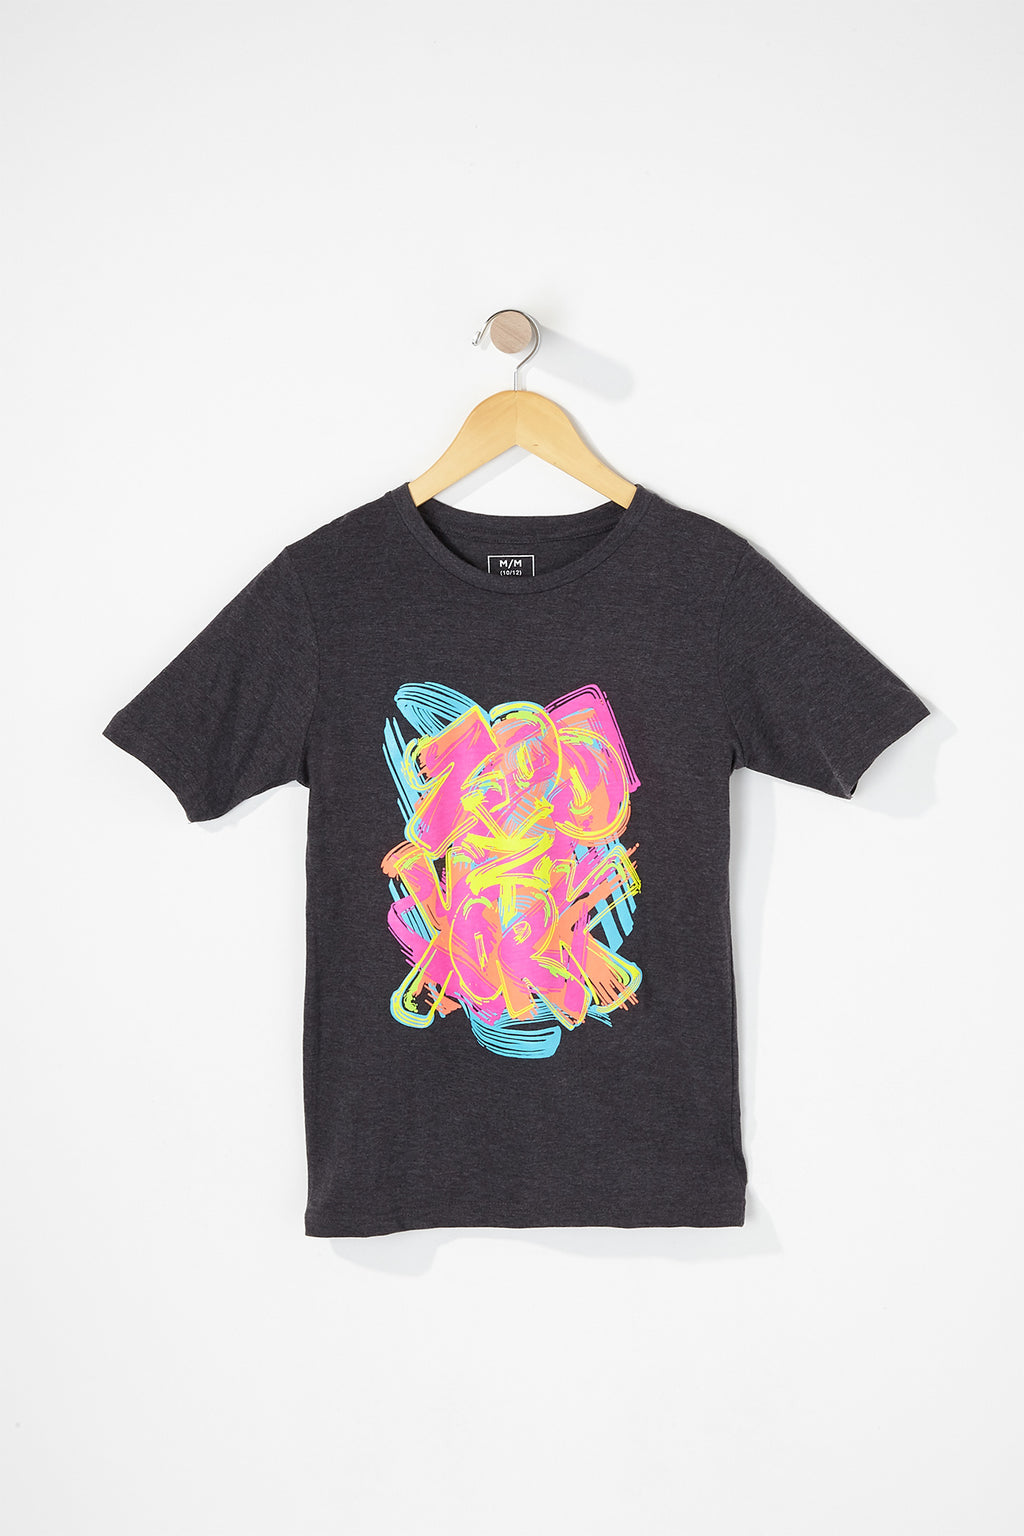 Zoo York Boys Retro Pop Art Tees